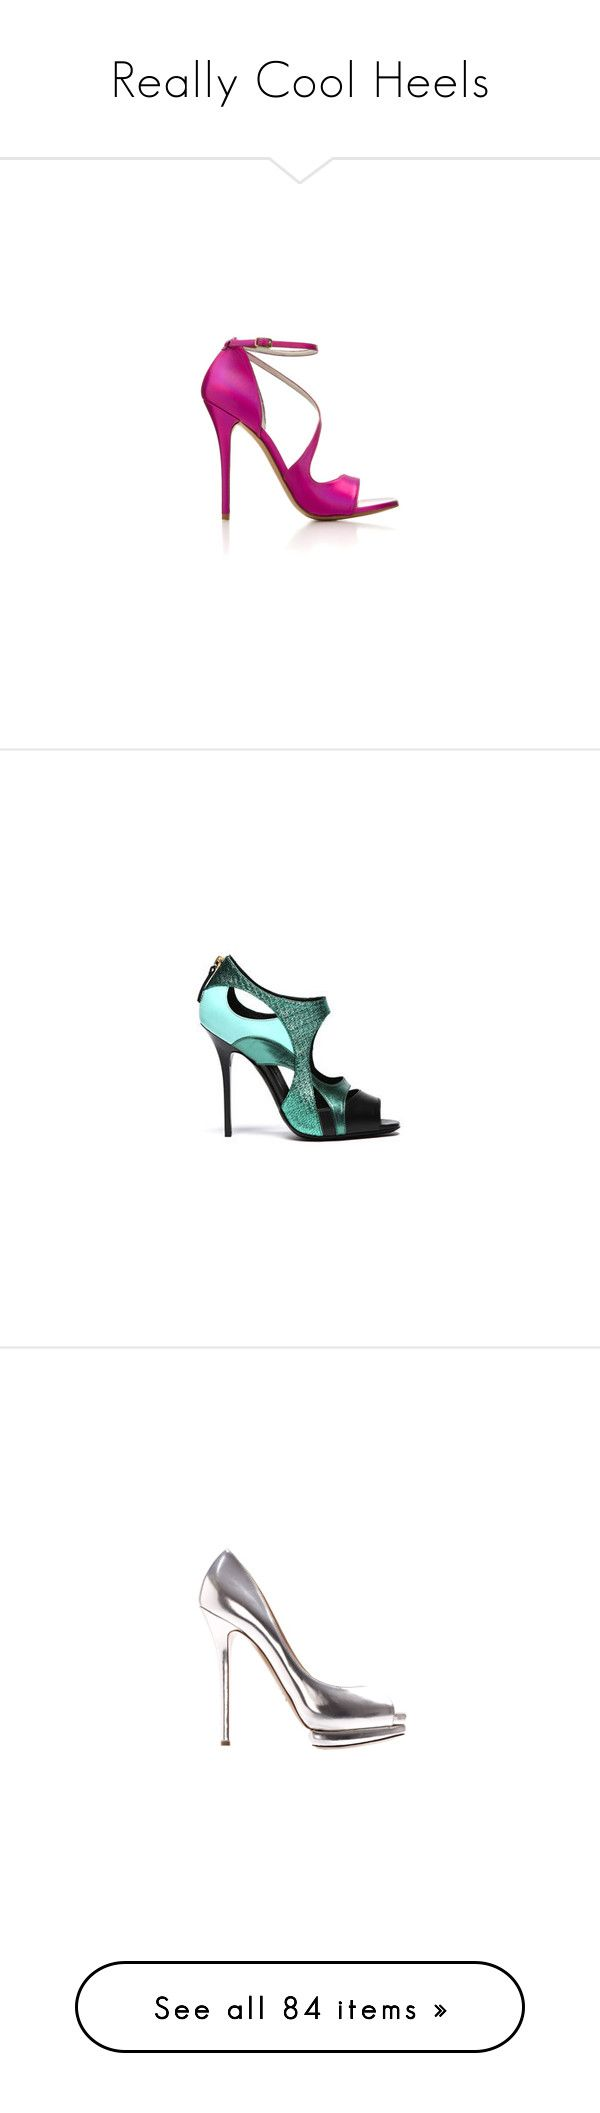 """Really Cool Heels"" by londonnewyorkparis ❤ liked on Polyvore featuring shoes, sandals, heels, pink, pumps, jimmy choo, checkered shoes, diego dolcini shoes, summer shoes and diego dolcini"